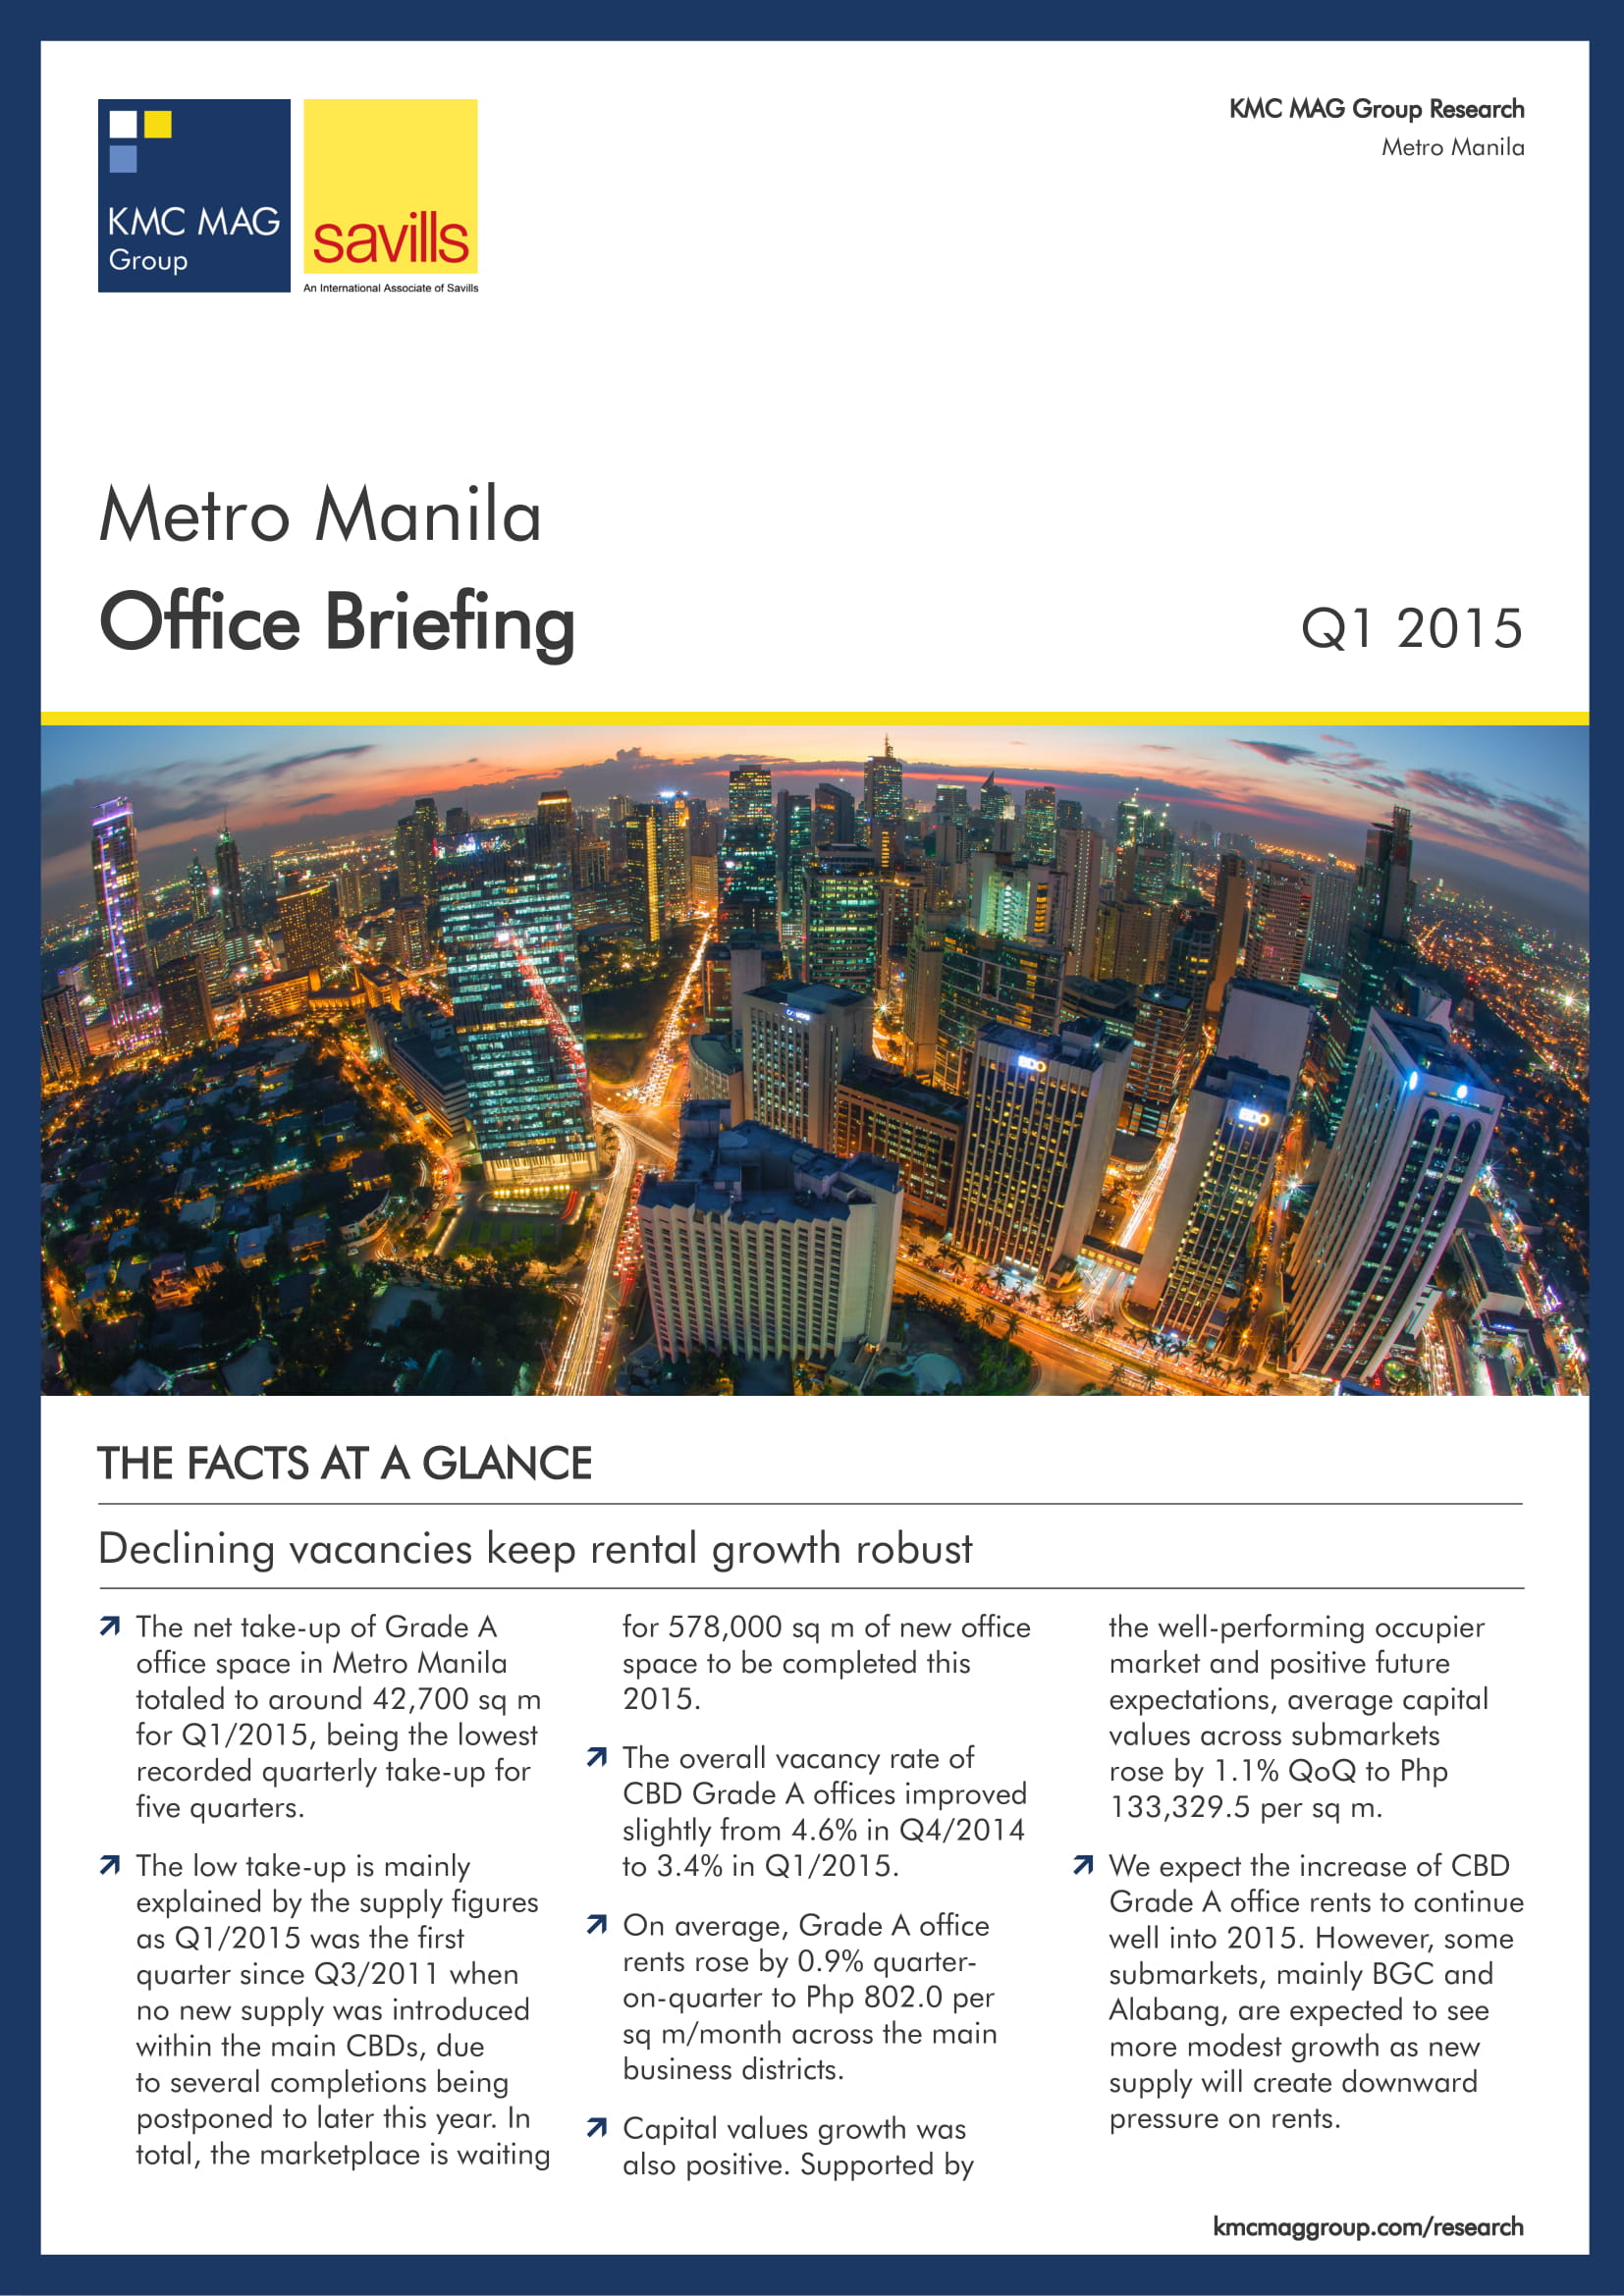 Metro Manila Office Briefing Q1 2015